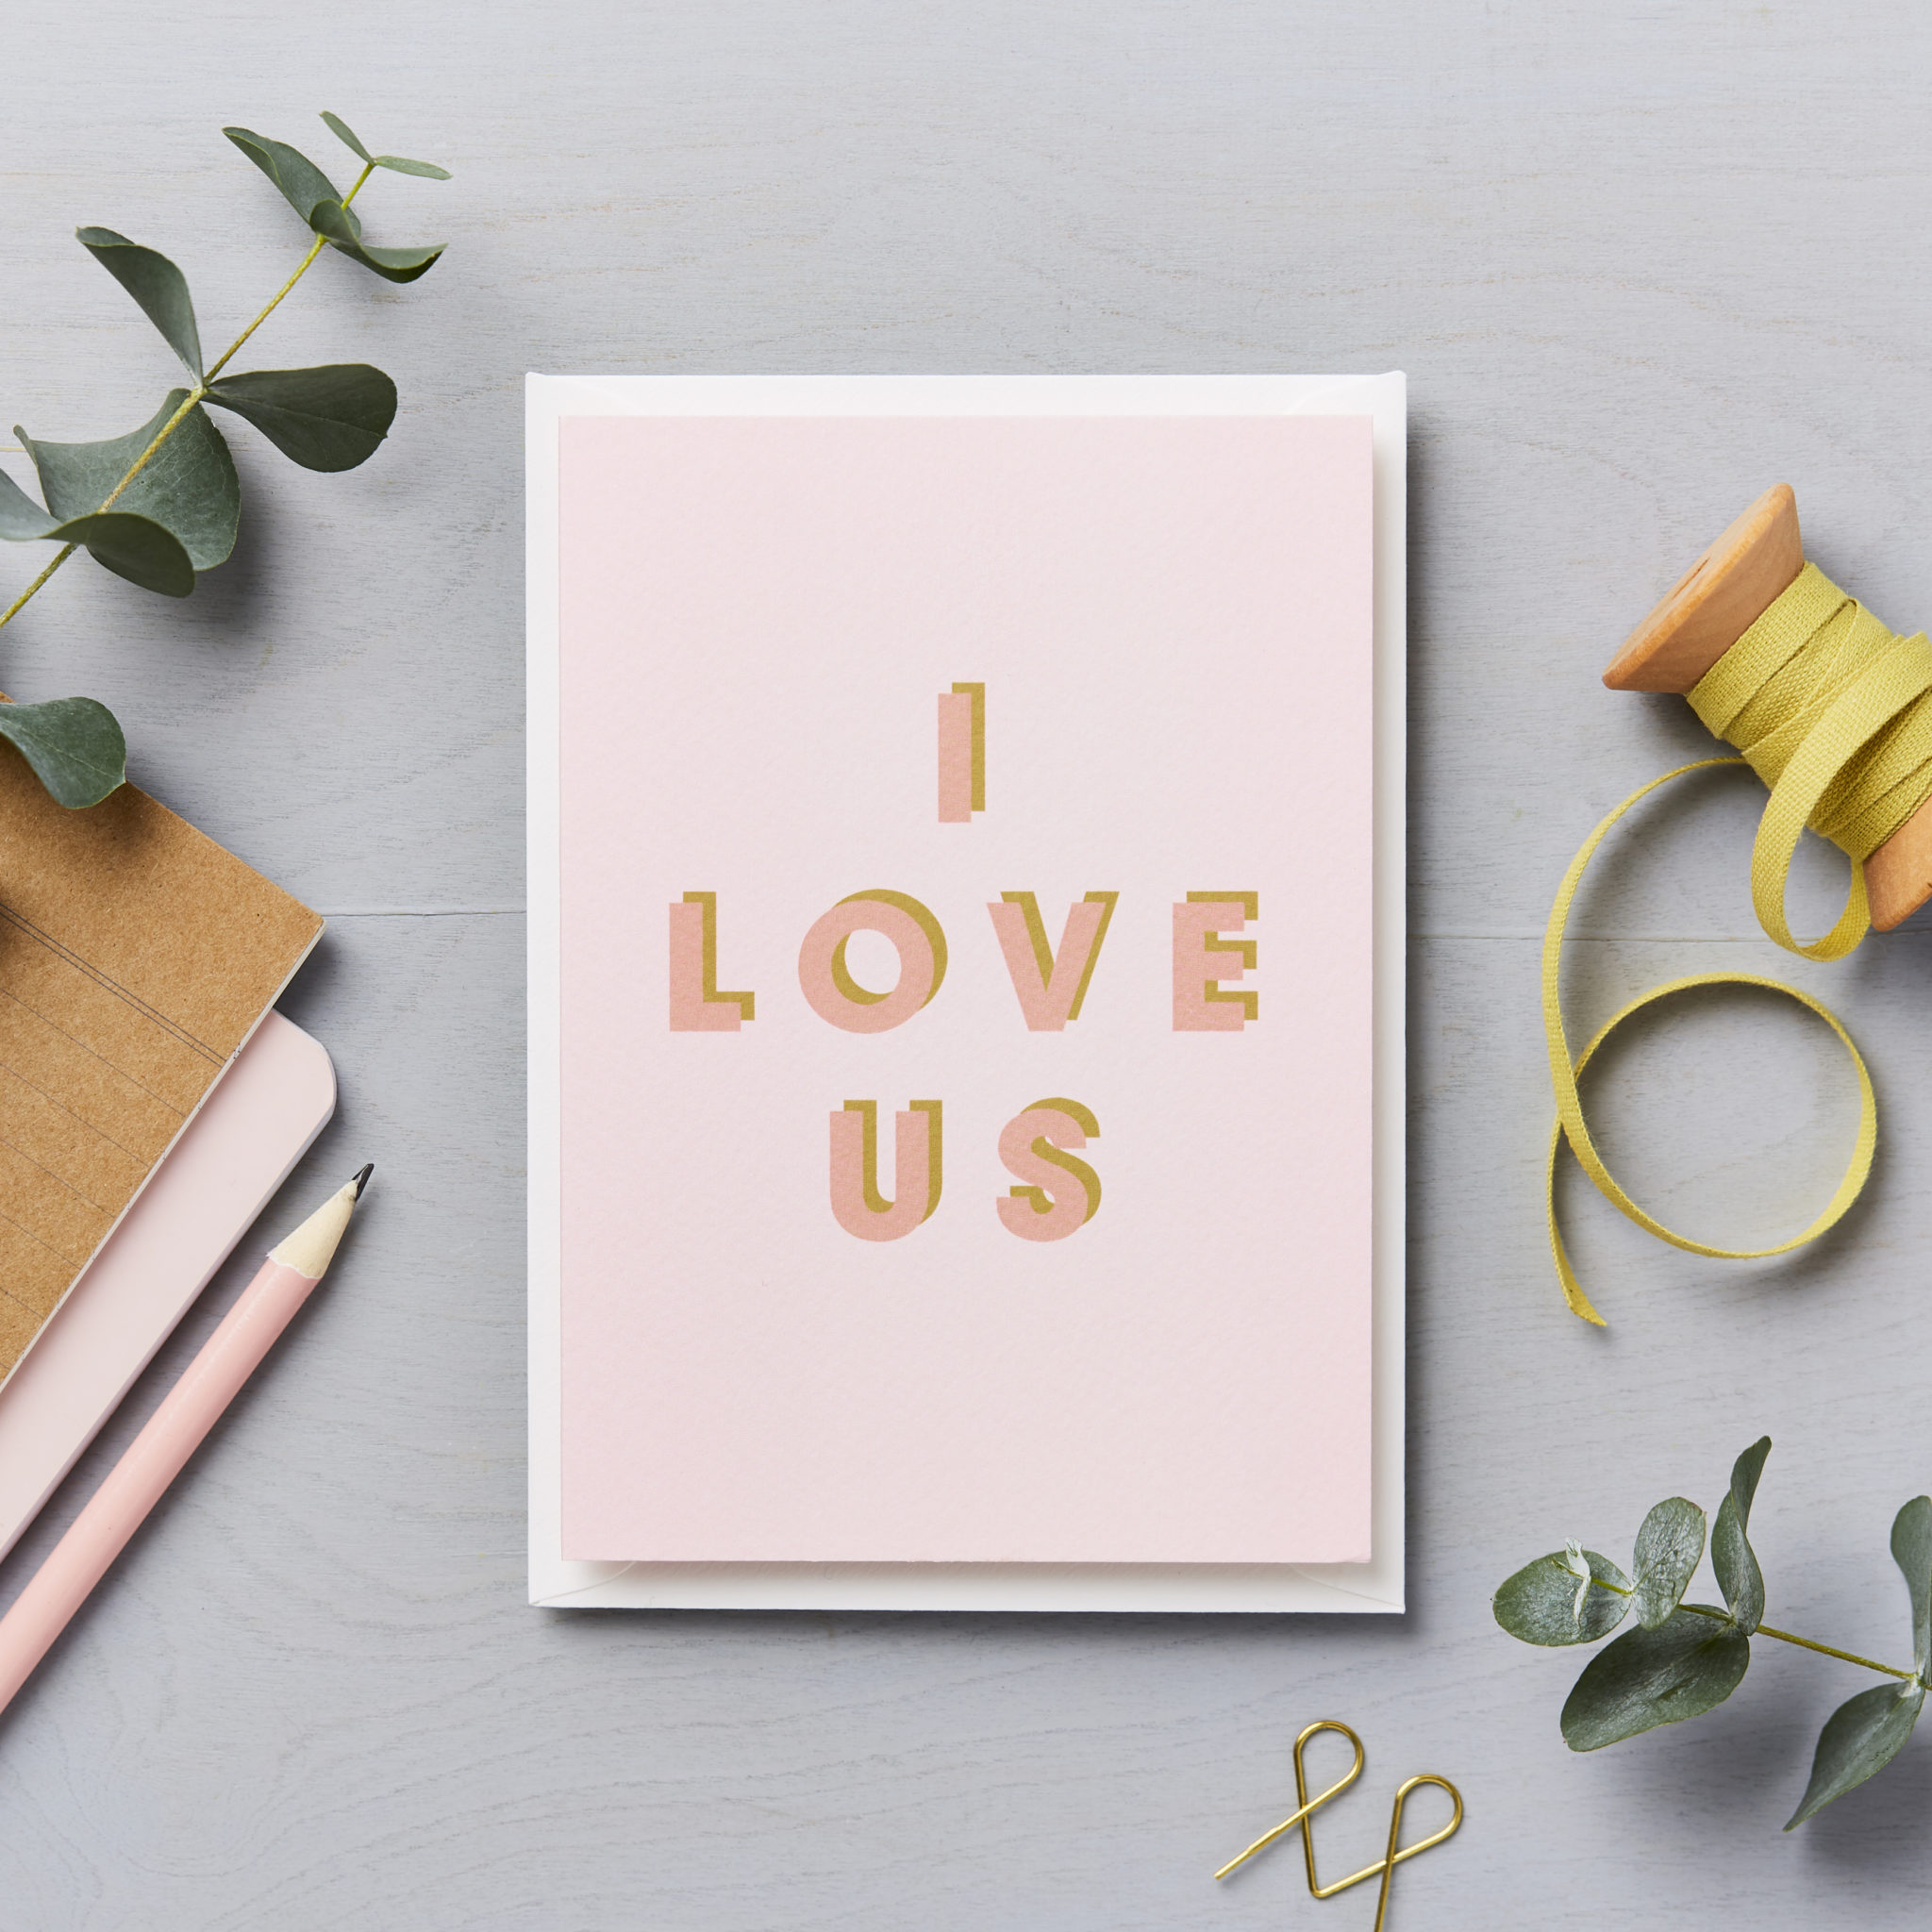 I love us - pink and mustard typographic card